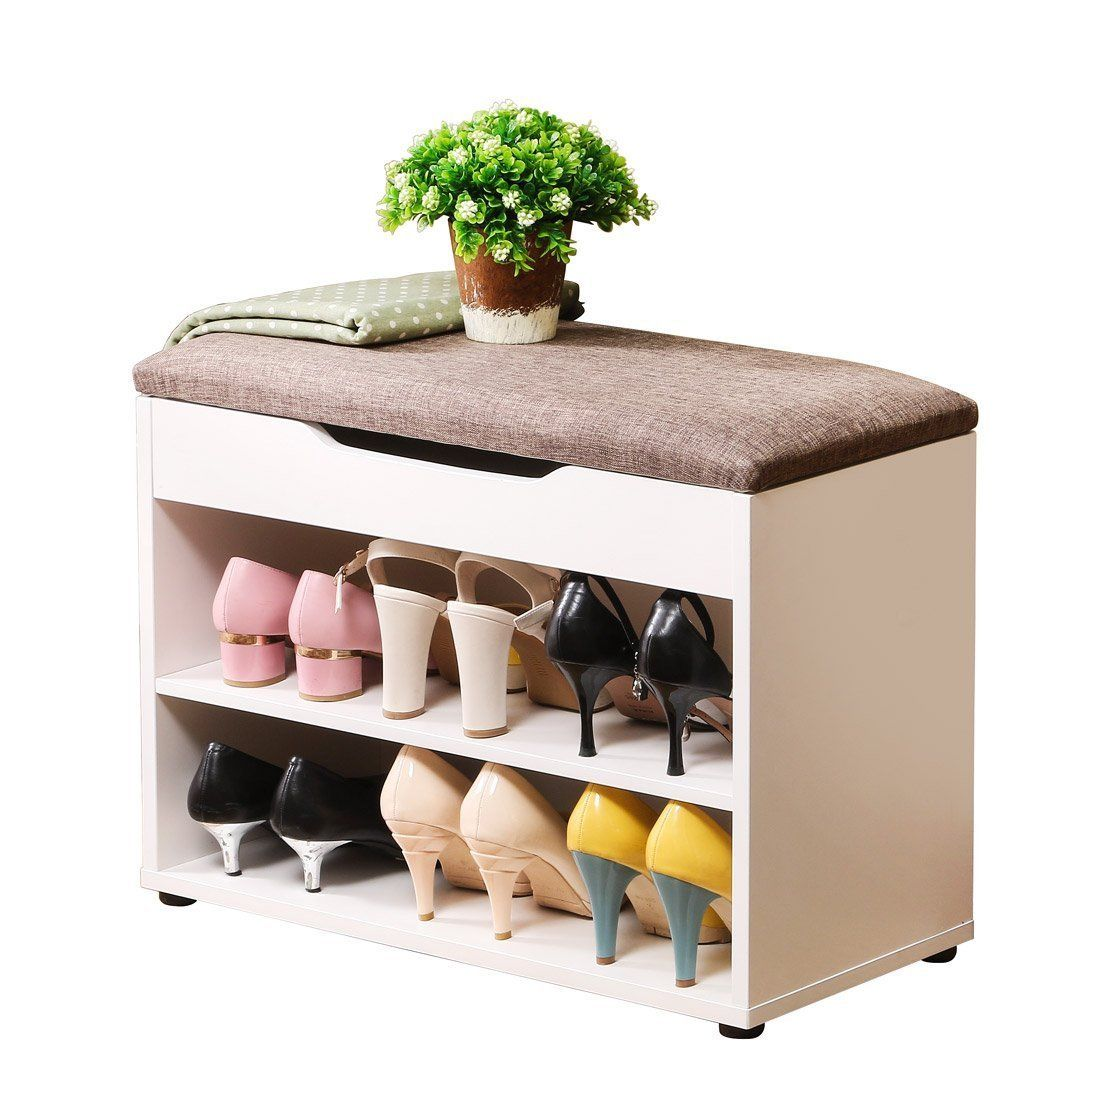 Hall Entryway Storage Bench 2-Tier Shoe Storage Cabinet Linen Top Sofa Style New